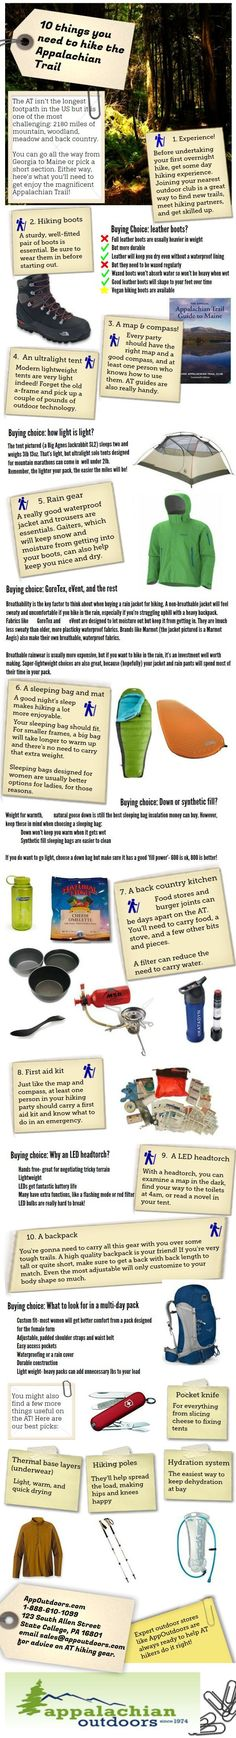 AT_packing_list_infographic